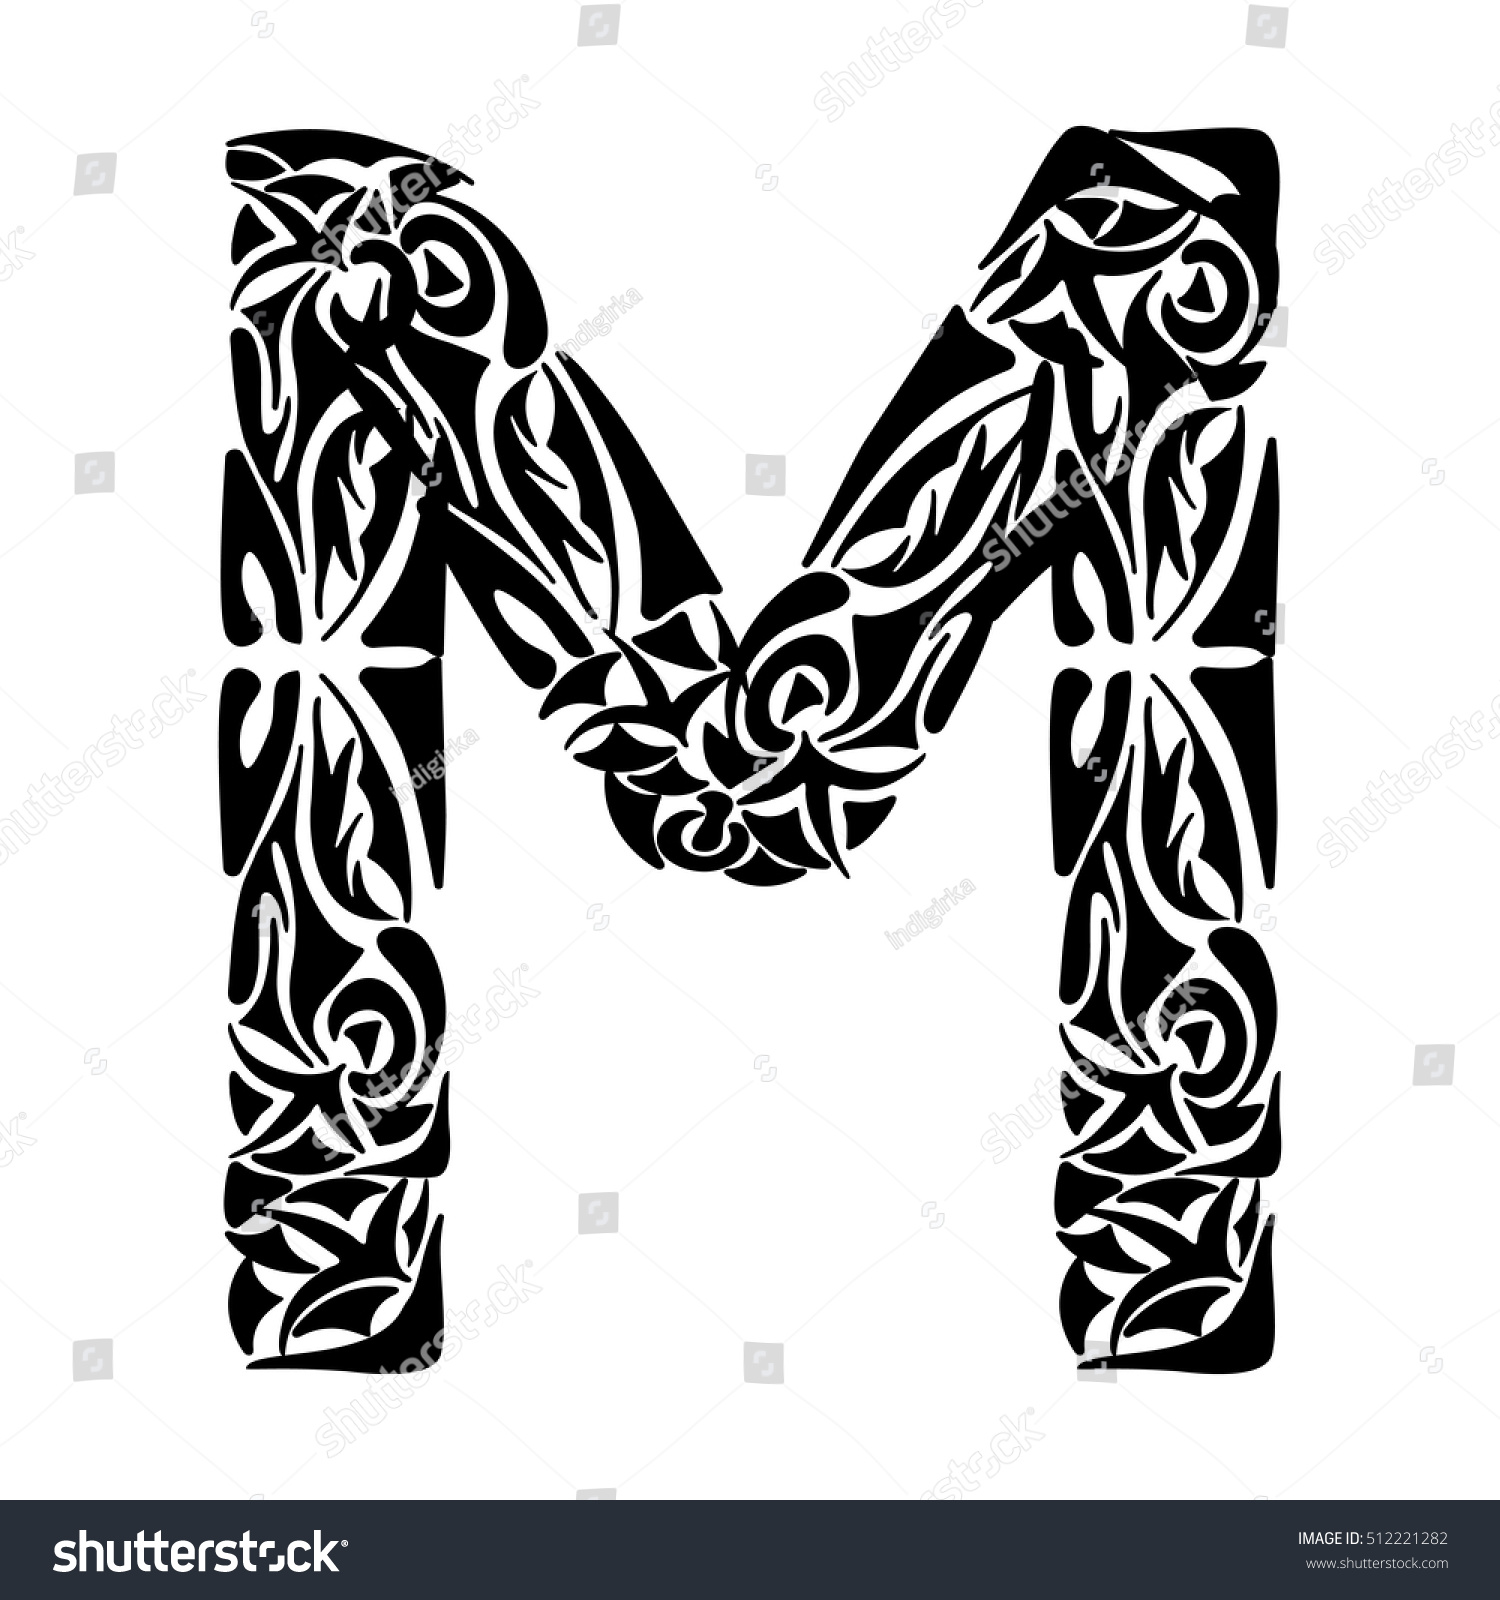 Polynesian tattoo initials tribal capital letter stock vector hd polynesian tattoo initials tribal capital letter m vector illustration for coloring page tattoos altavistaventures Gallery